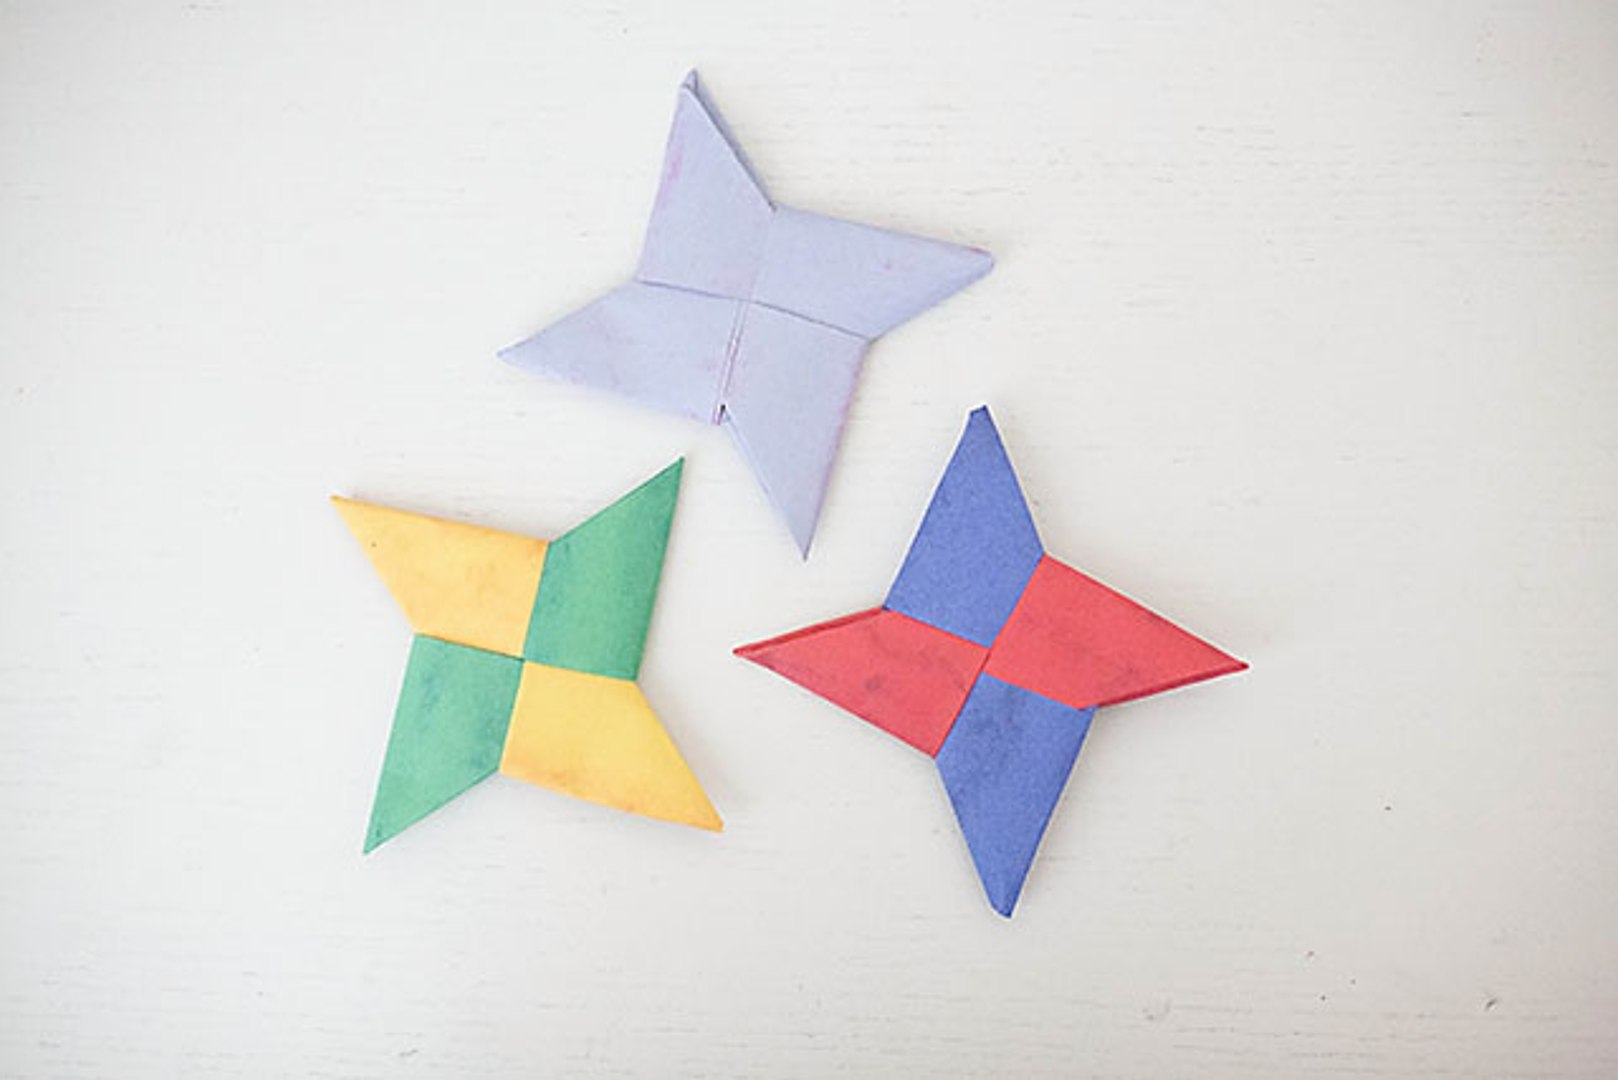 origami stars anleitung | Origami sterne, Origami papier, Origami ... | 1080x1618